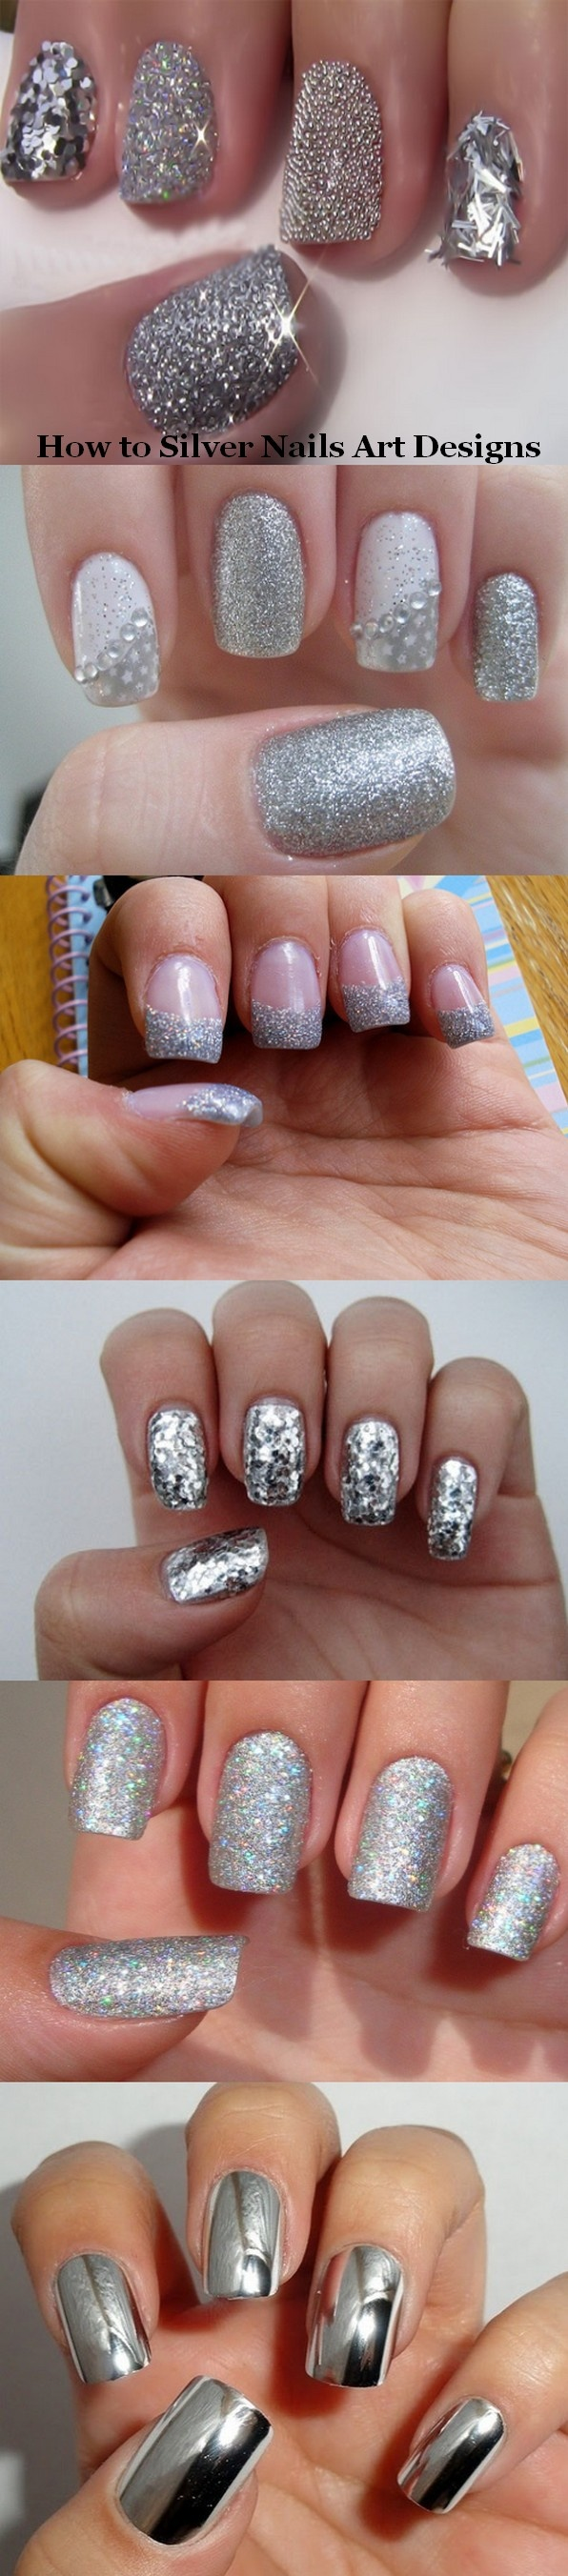 How to silver nails art designs